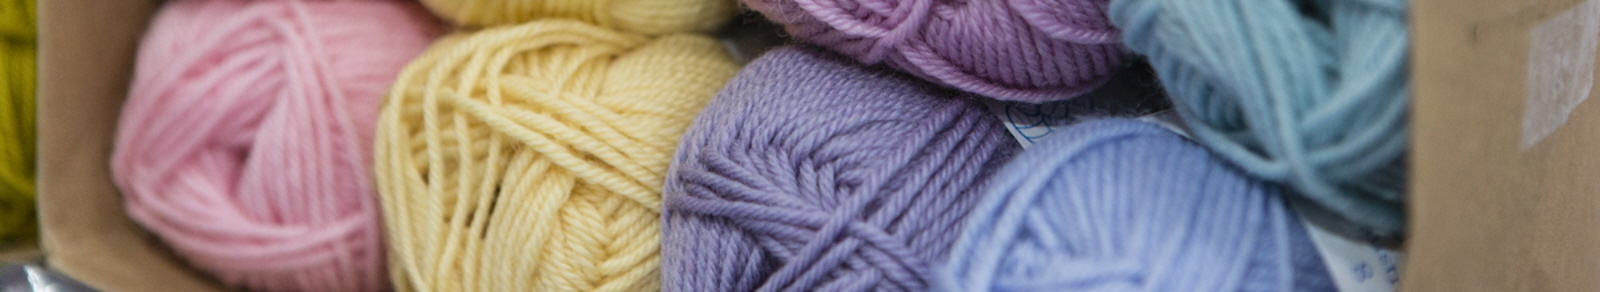 Charity Knitting Information